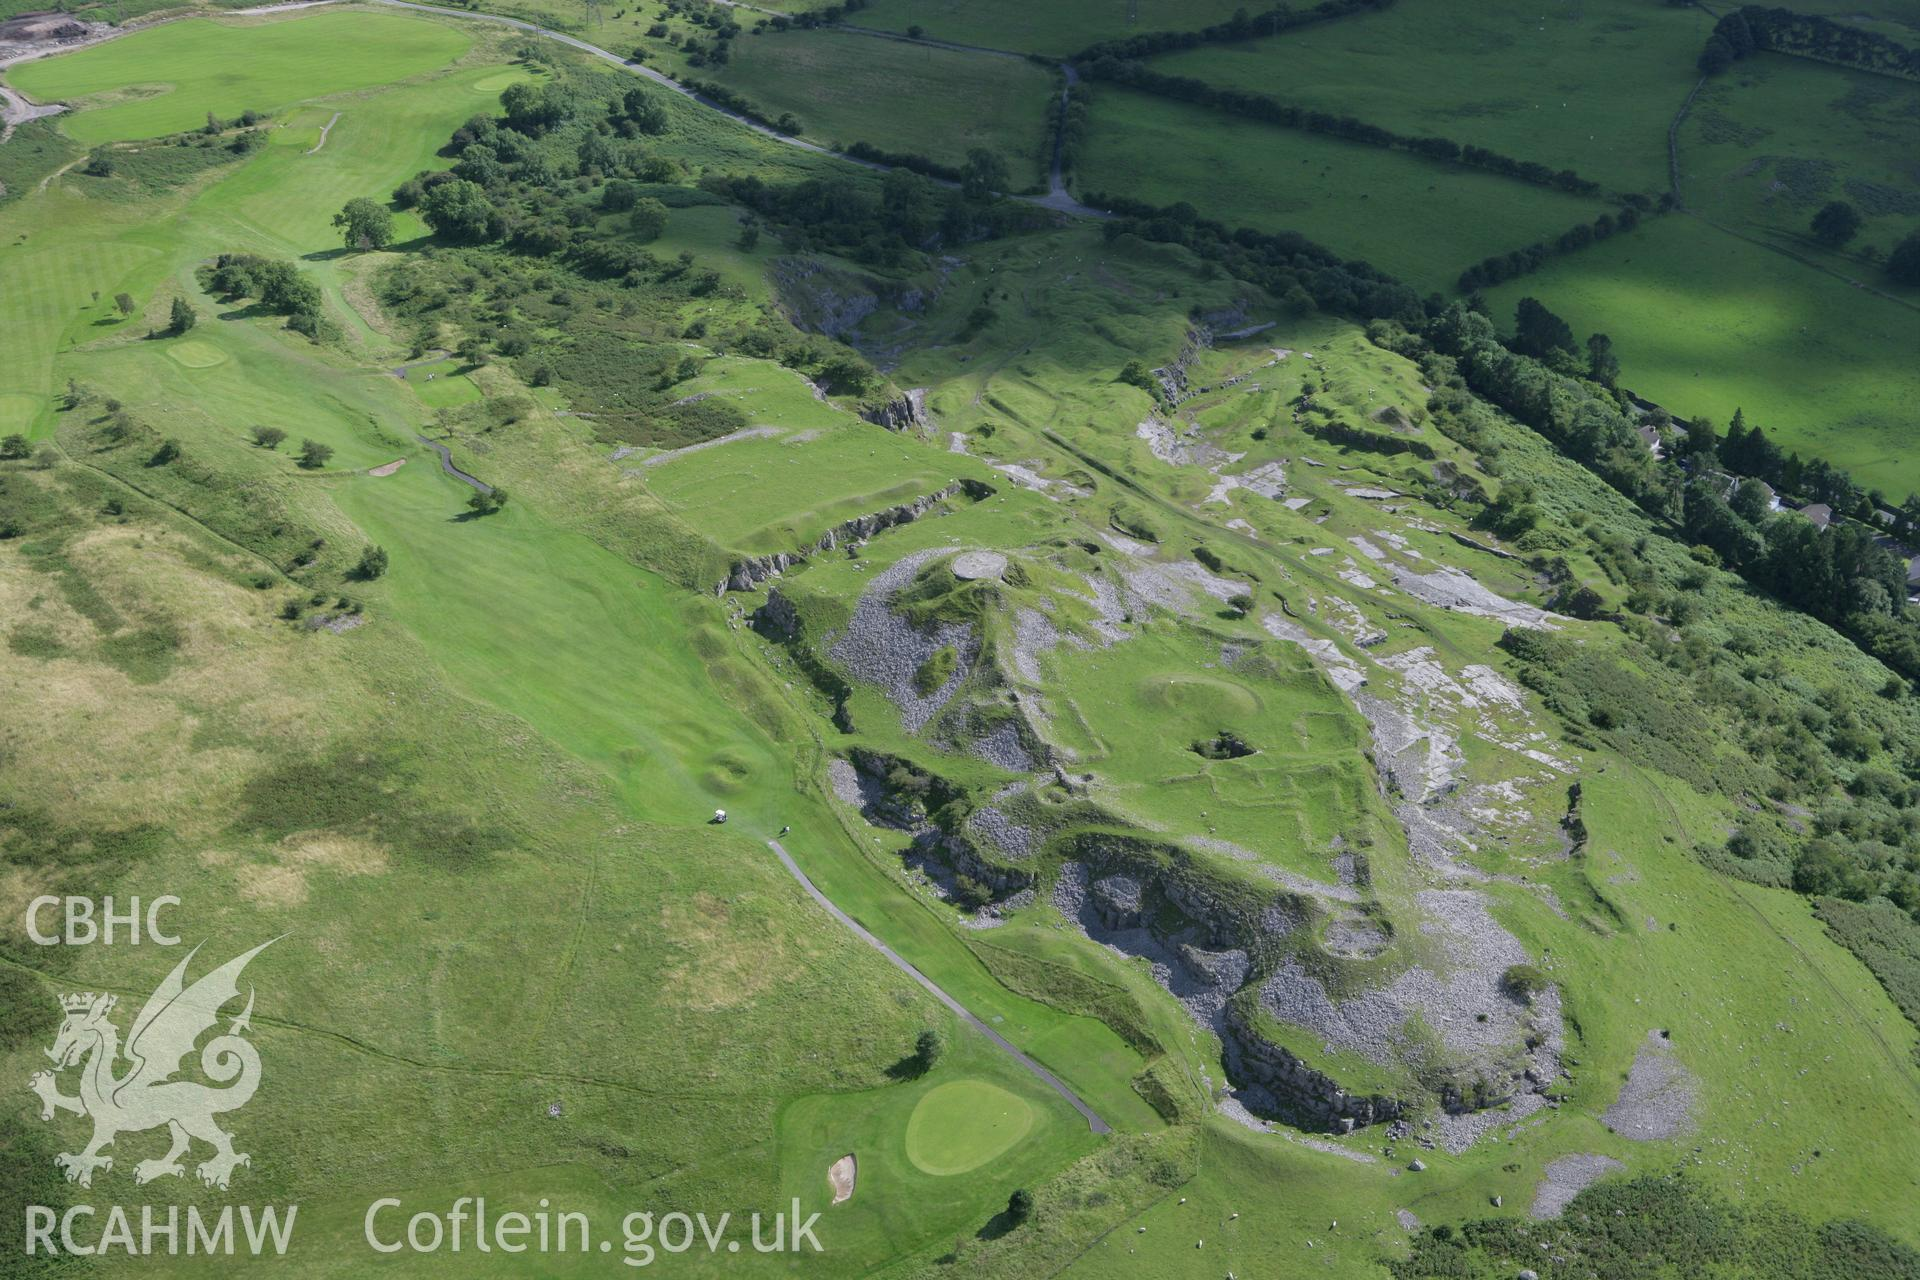 RCAHMW colour oblique aerial photograph of Morlais Castle. Taken on 30 July 2007 by Toby Driver